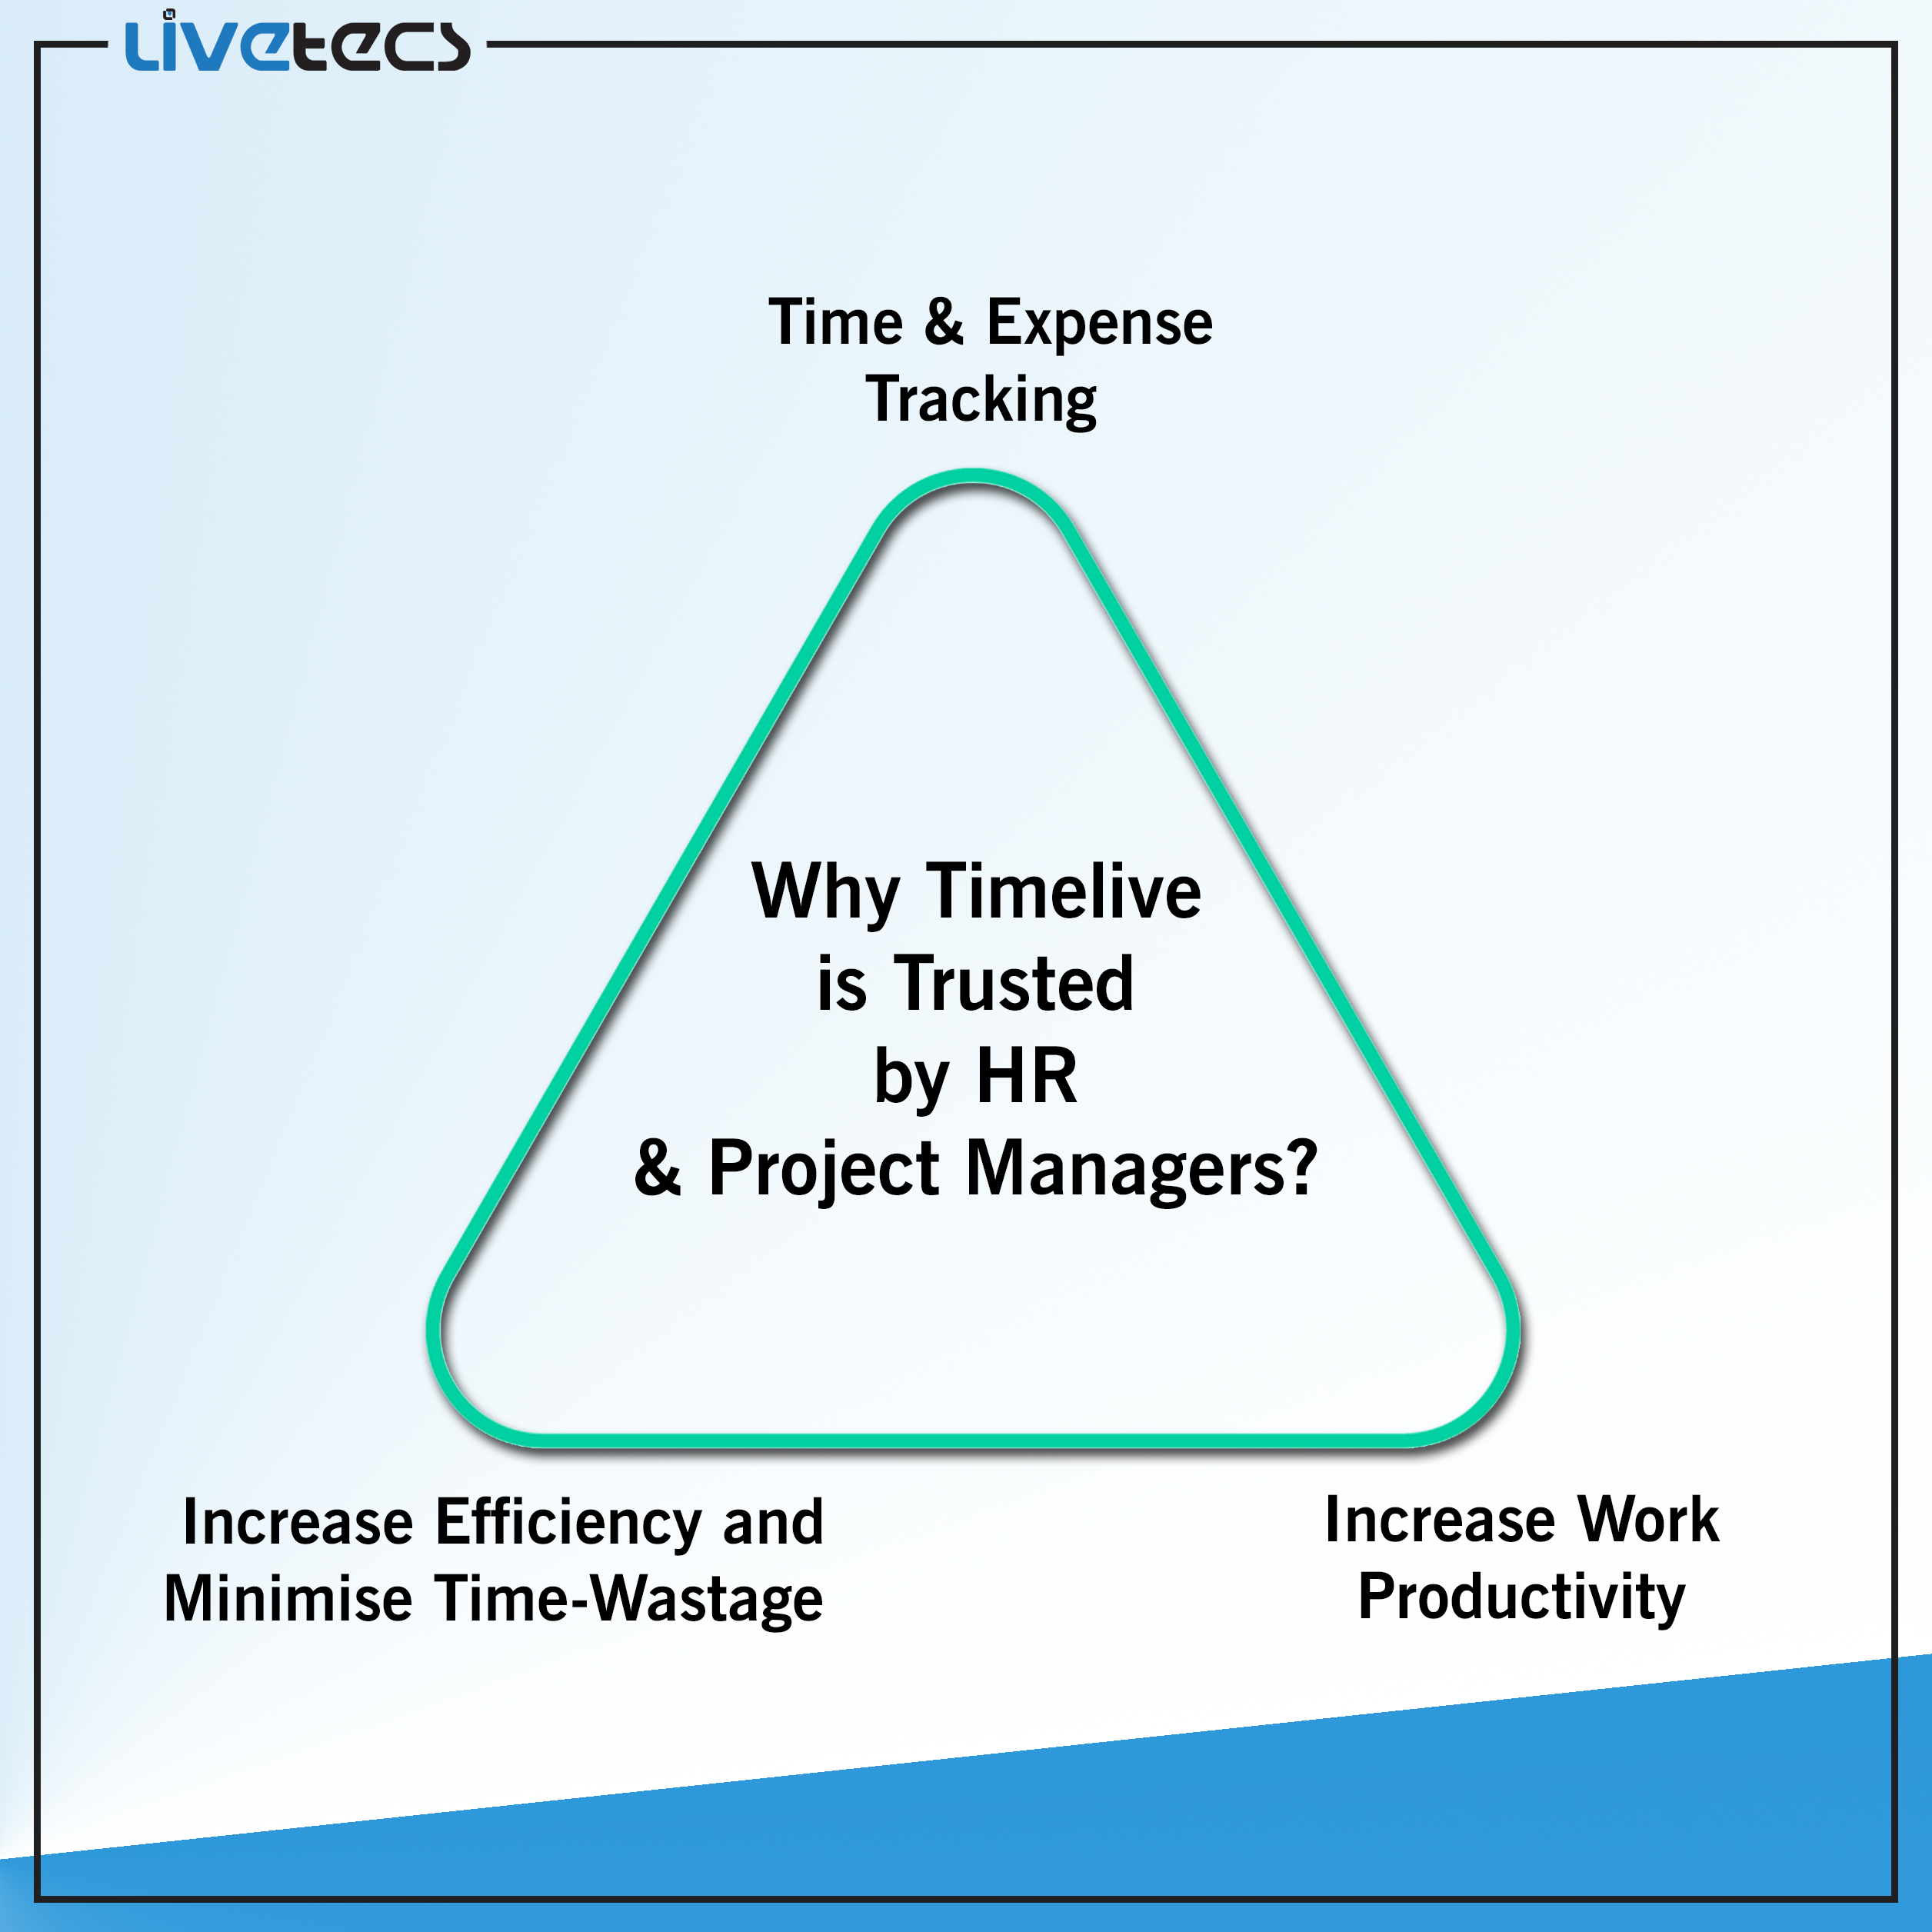 attention hr project managers where timelive is free for 30 days